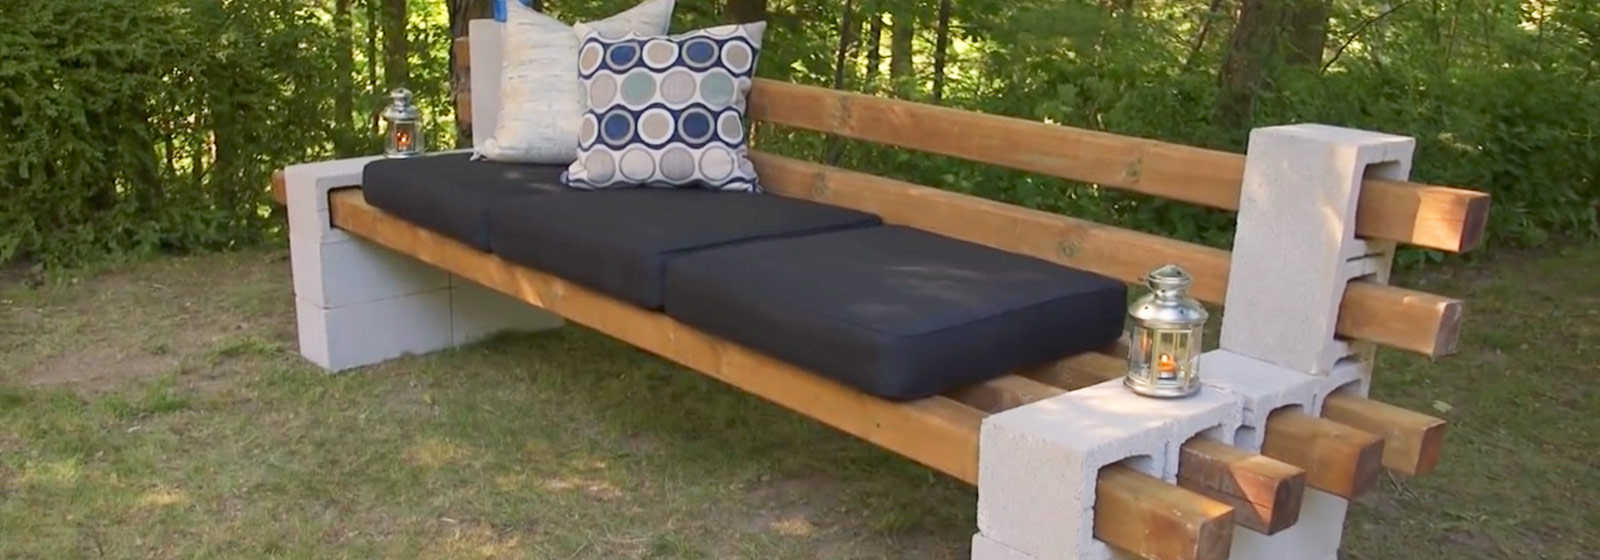 Best ideas about Cinder Block Bench DIY . Save or Pin DIY Cinder Block Bench Summer simplified belairdirect Now.